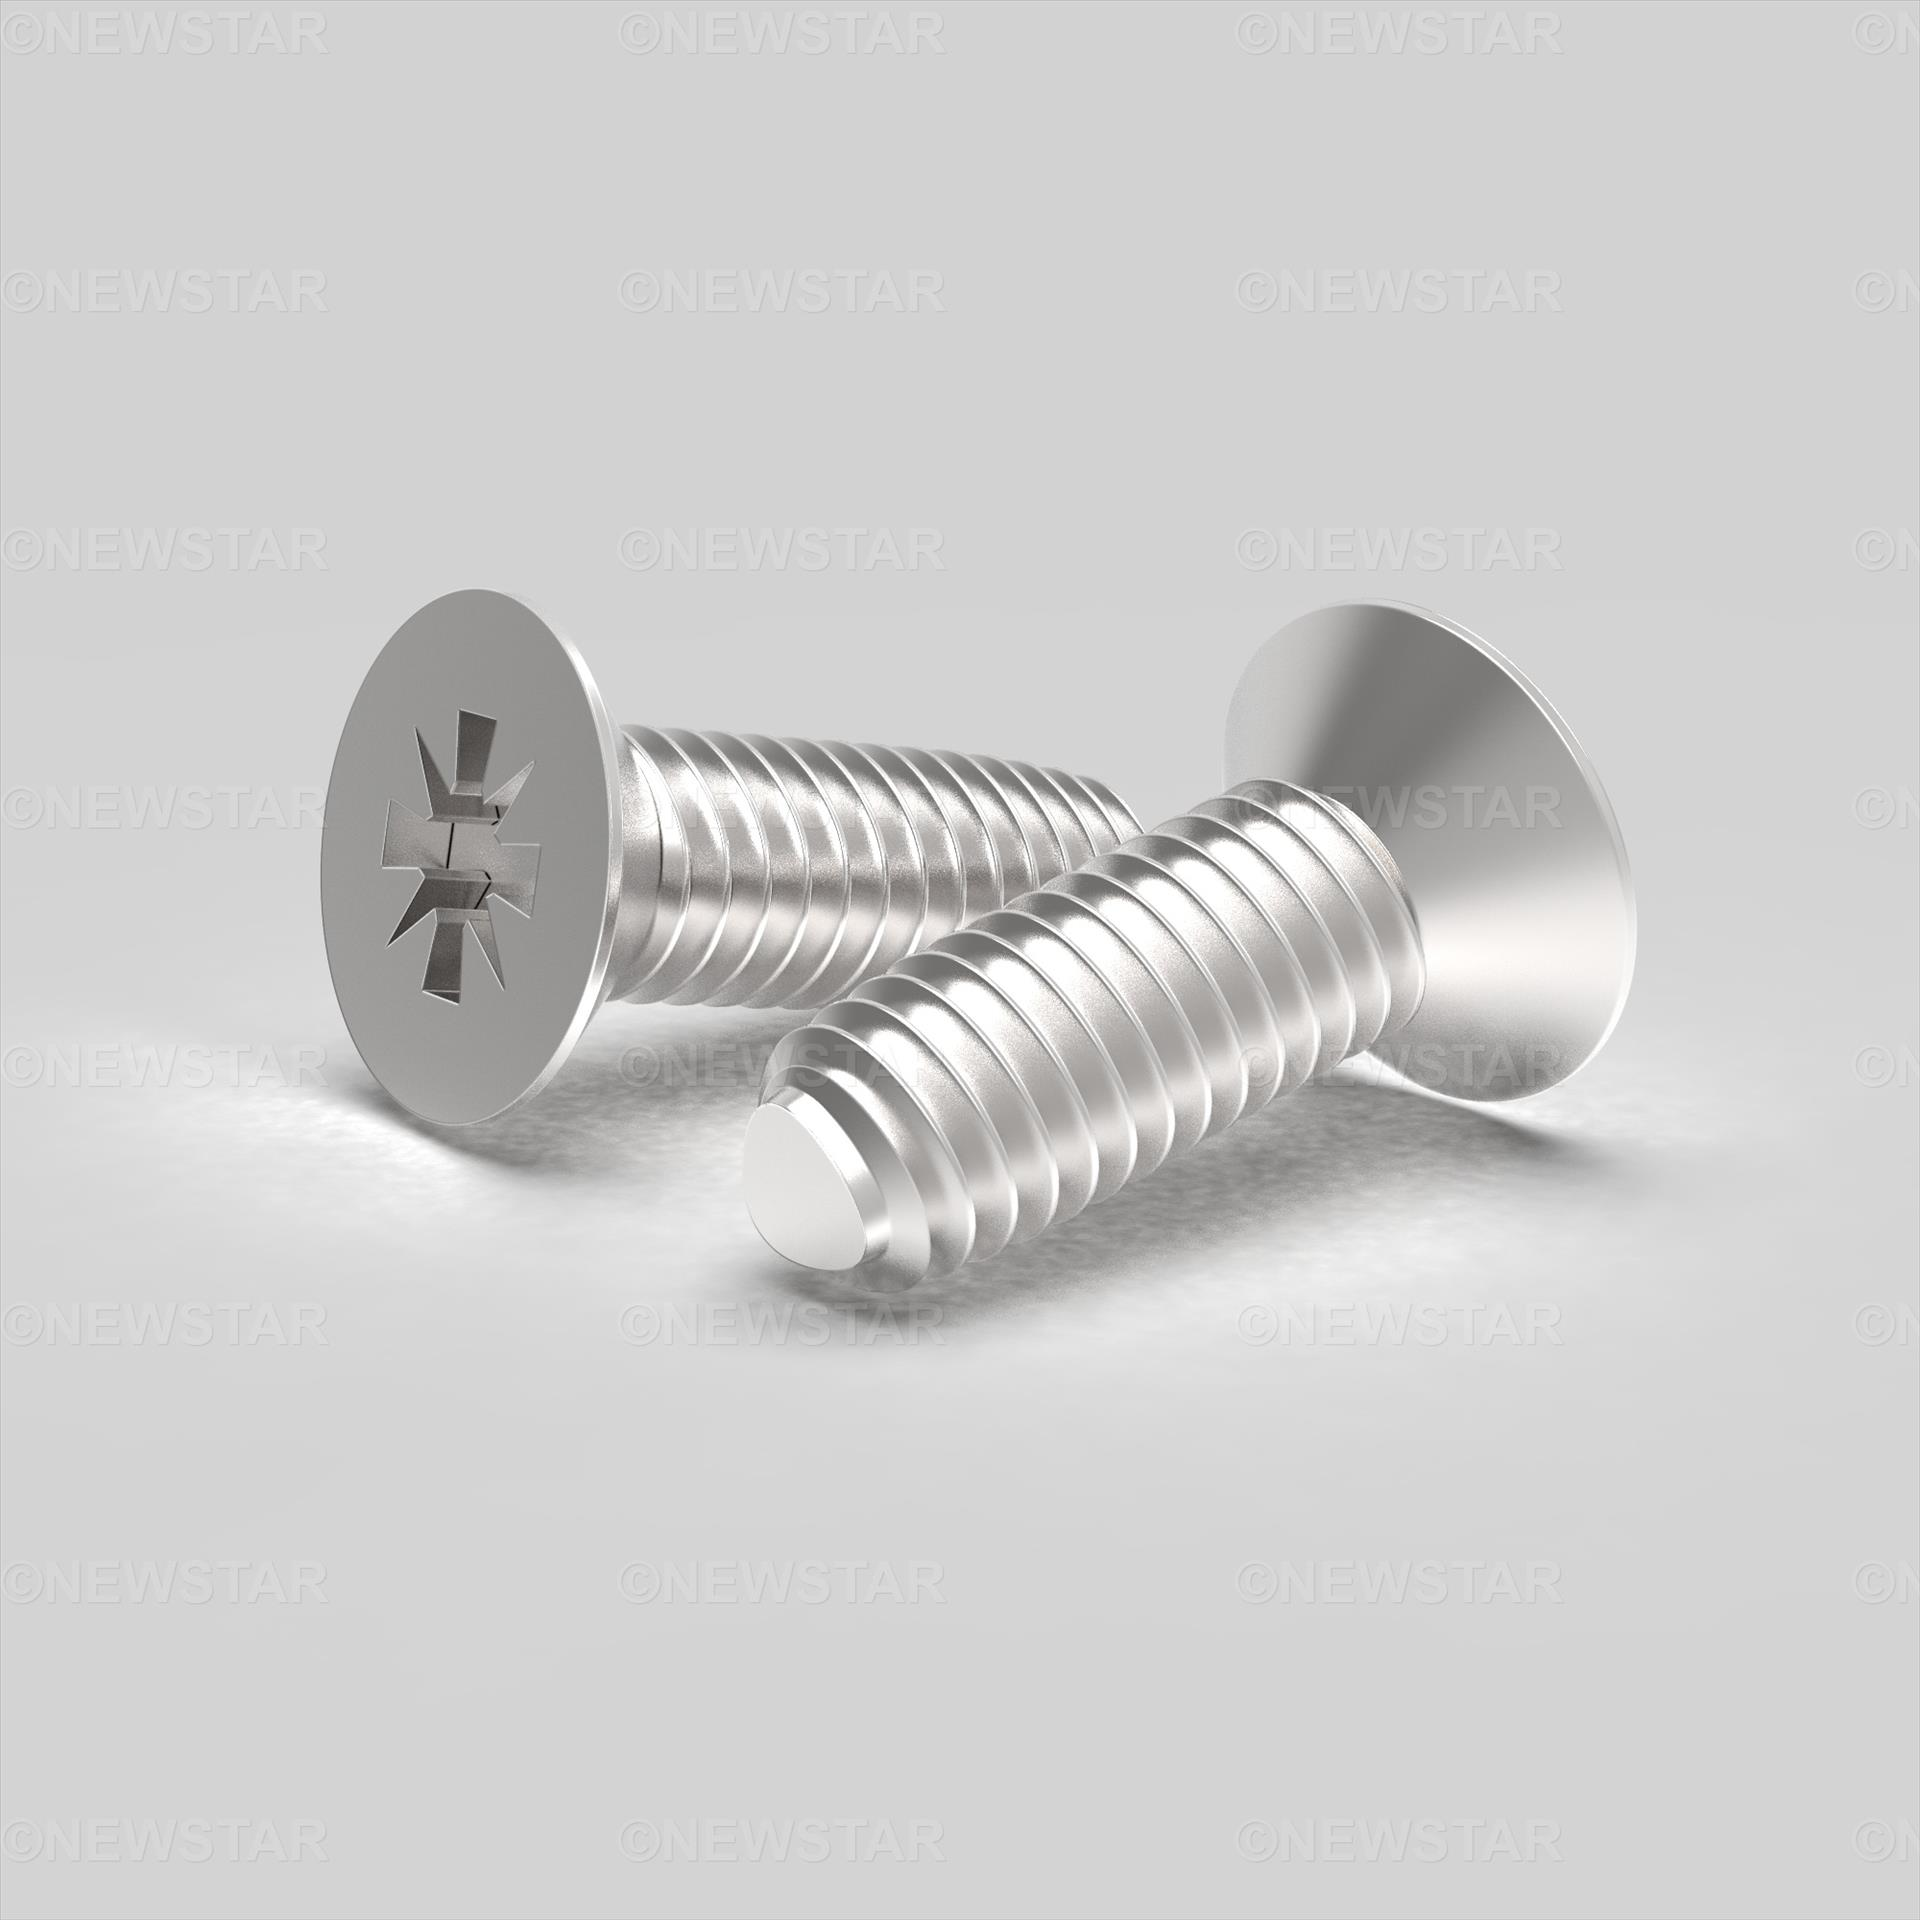 M2.5 X 6 Countersunk Pozi Thread Forming Screw DIN7500M A2 Stainless Steel